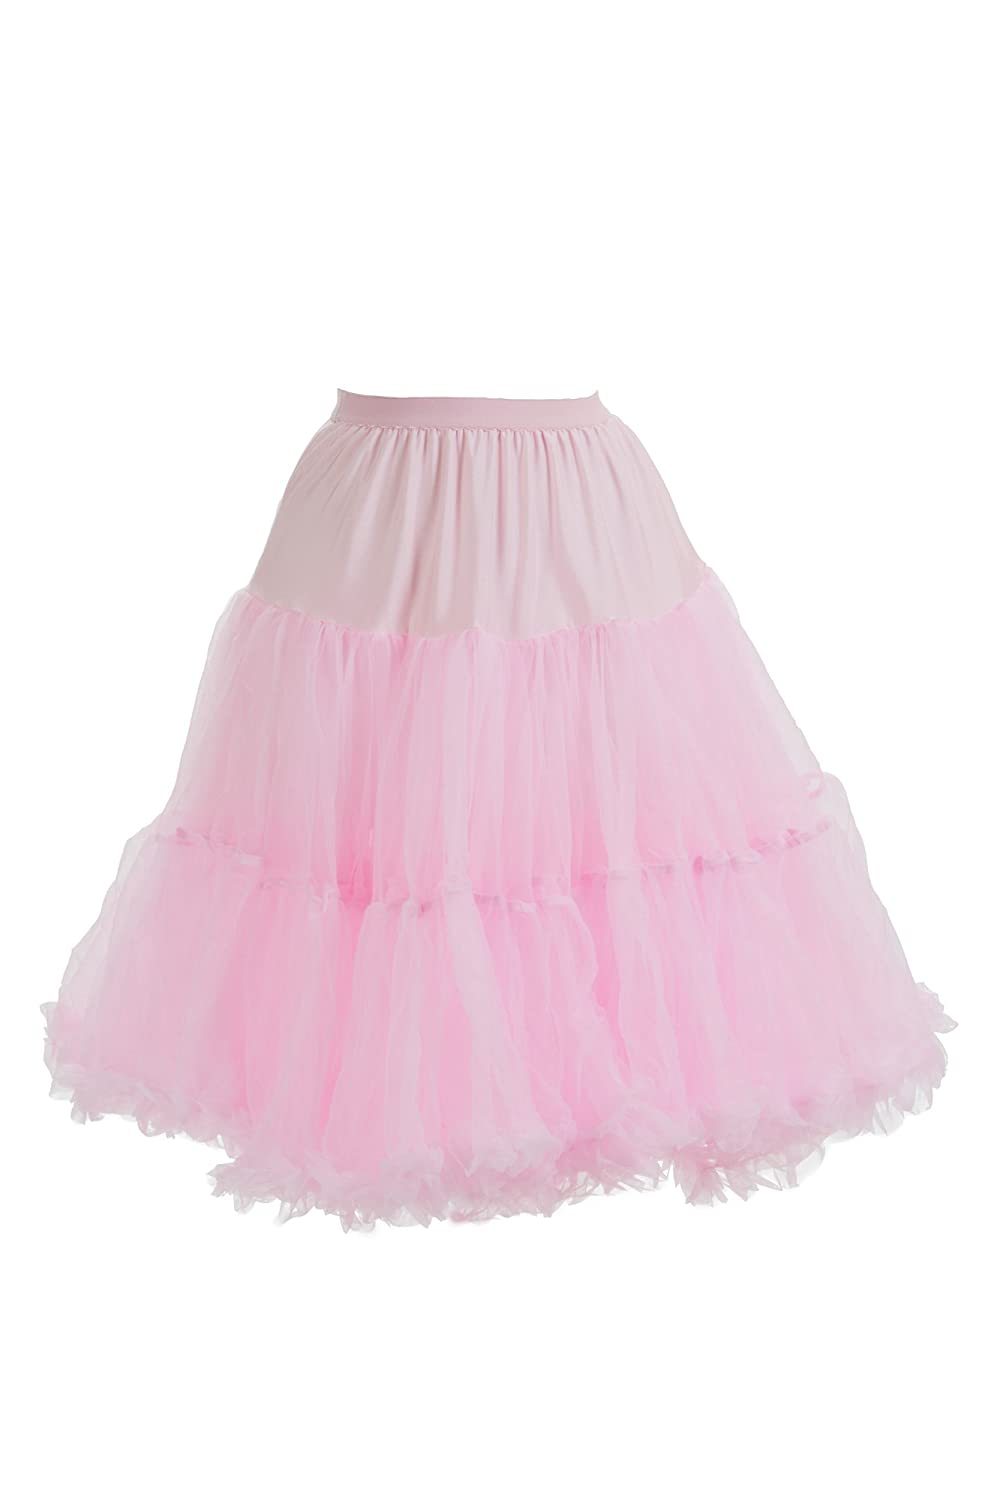 Crinoline By Tatyana - Red and Pink Petticoats $50.00 AT vintagedancer.com